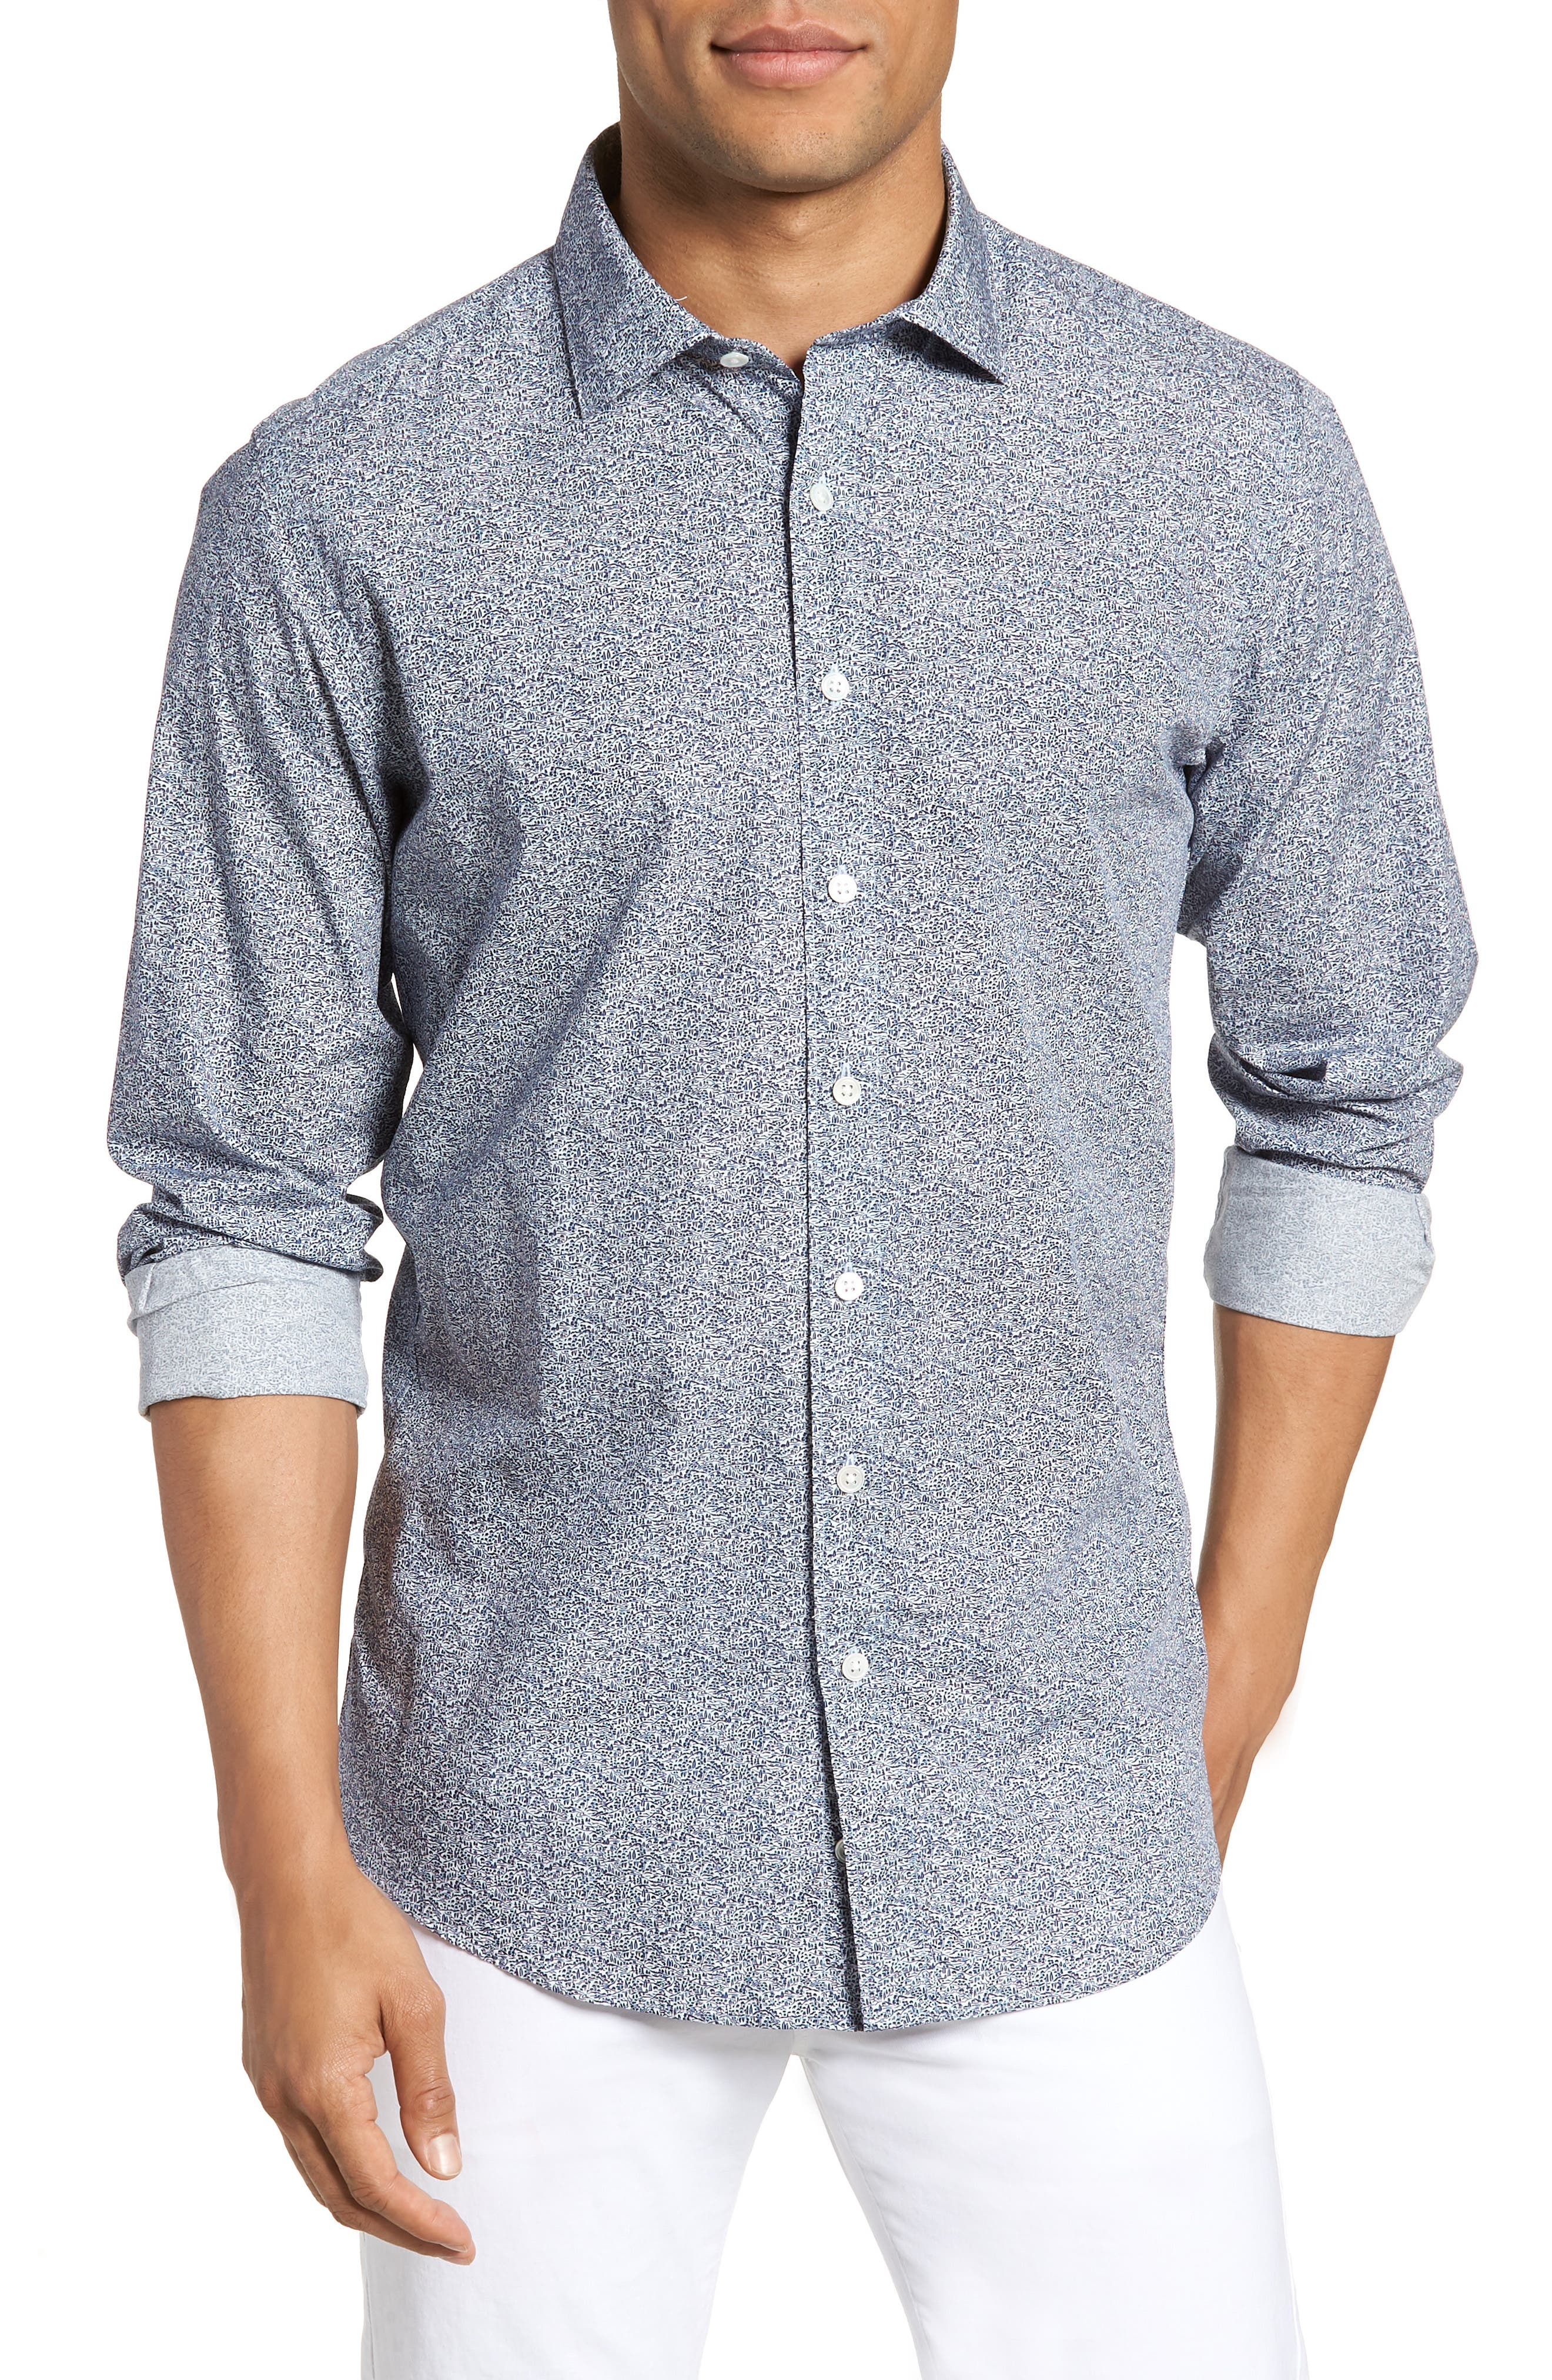 Massey West Slim Fit Sport Shirt,                         Main,                         color, 401